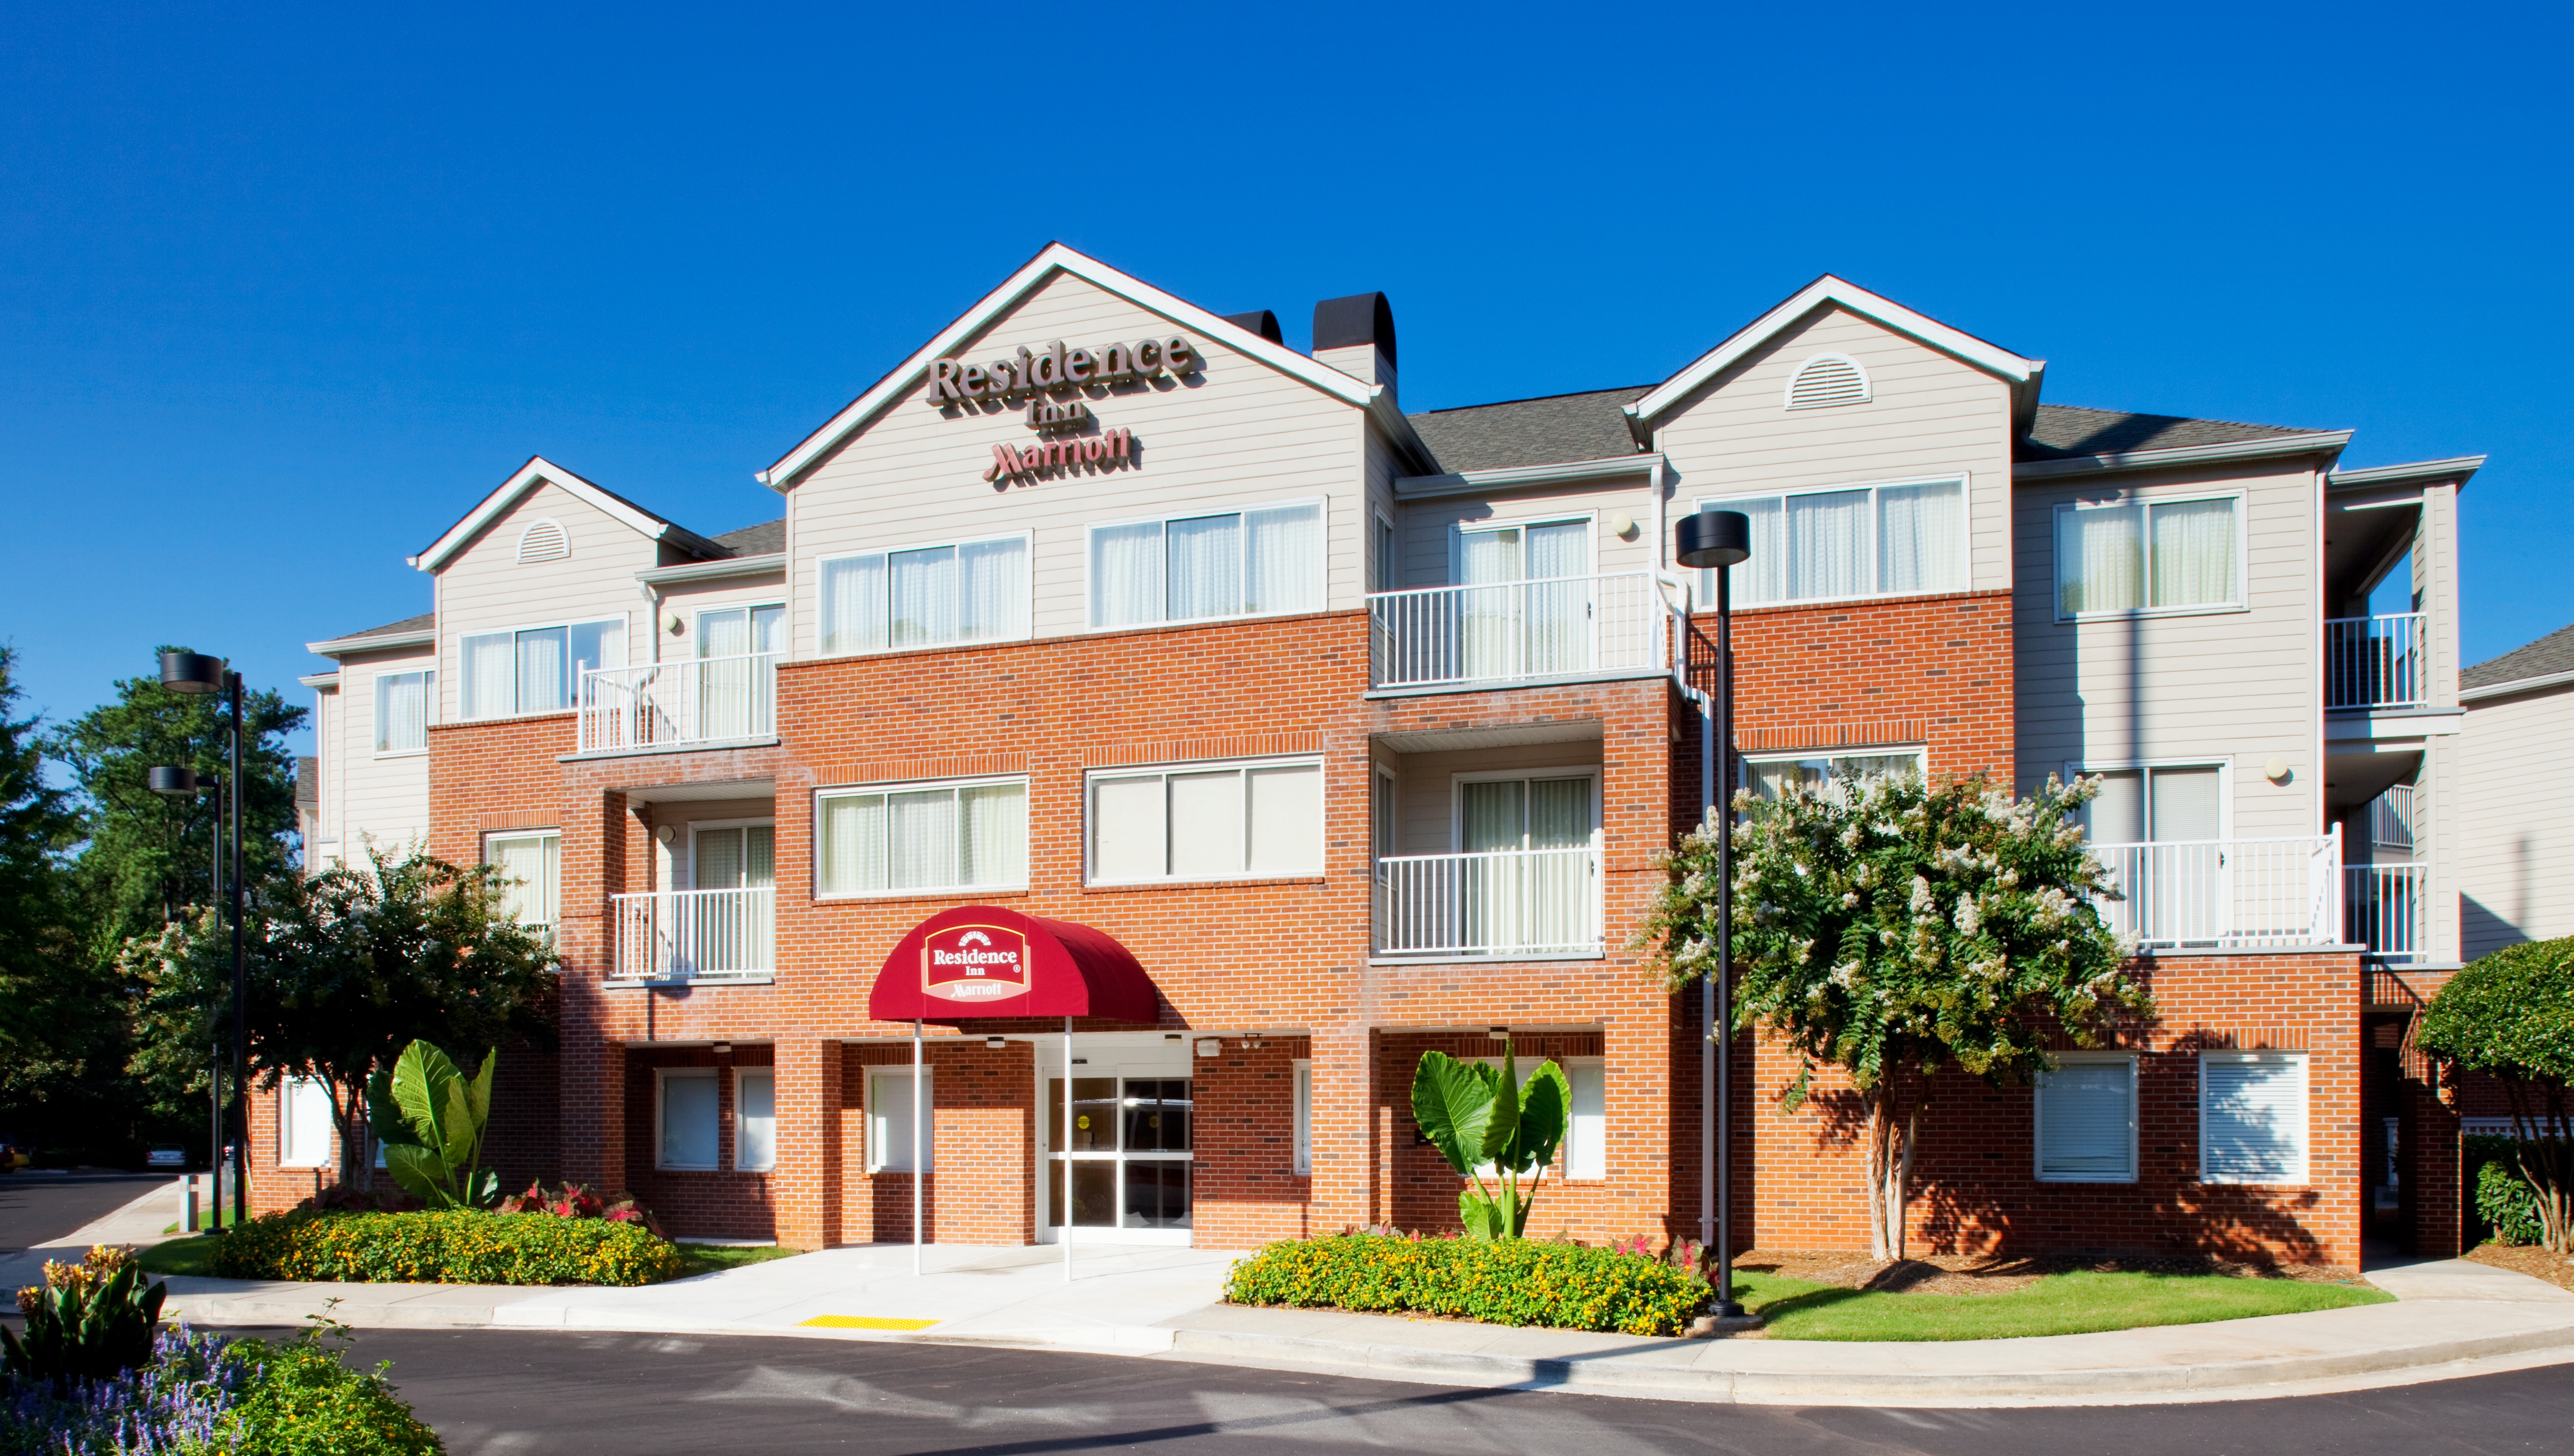 Marriott residence inn coupon code 2018